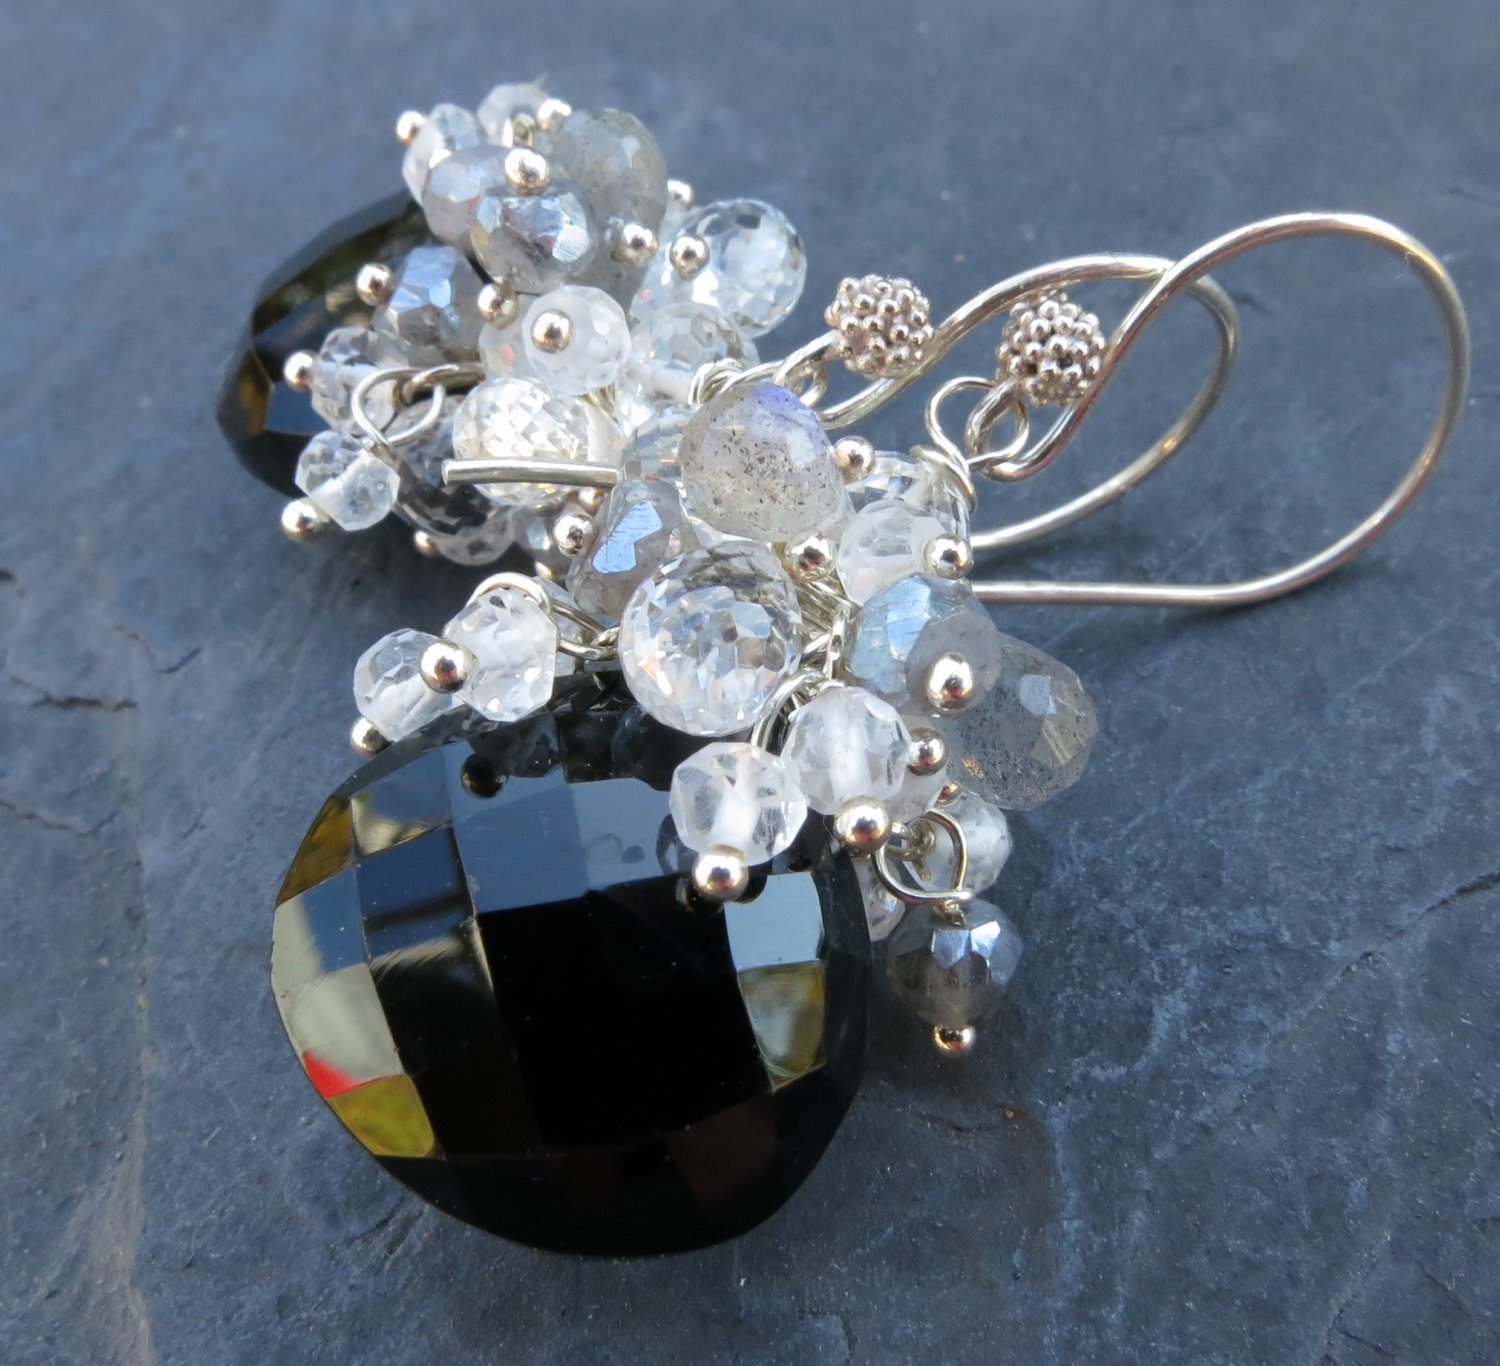 Black spinel moonstone white topaz earrings with labradorite